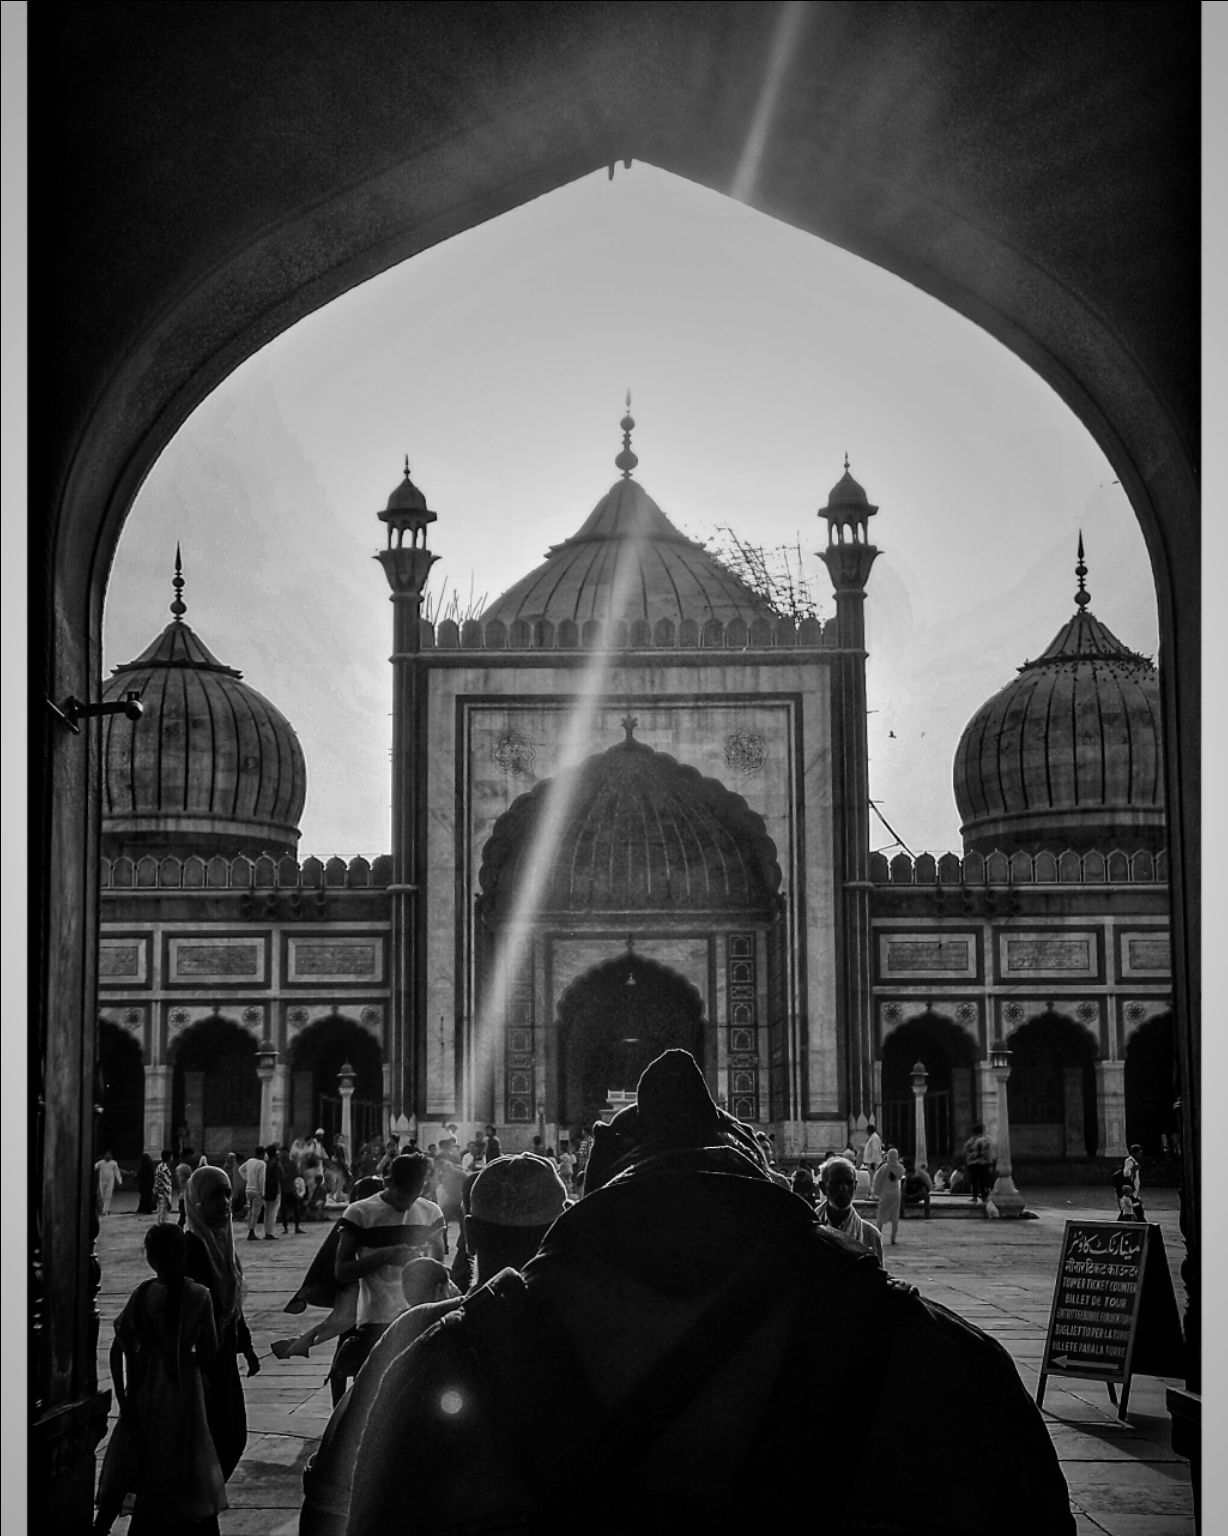 Photo of New Delhi Weekend Getaways By Abdul alim